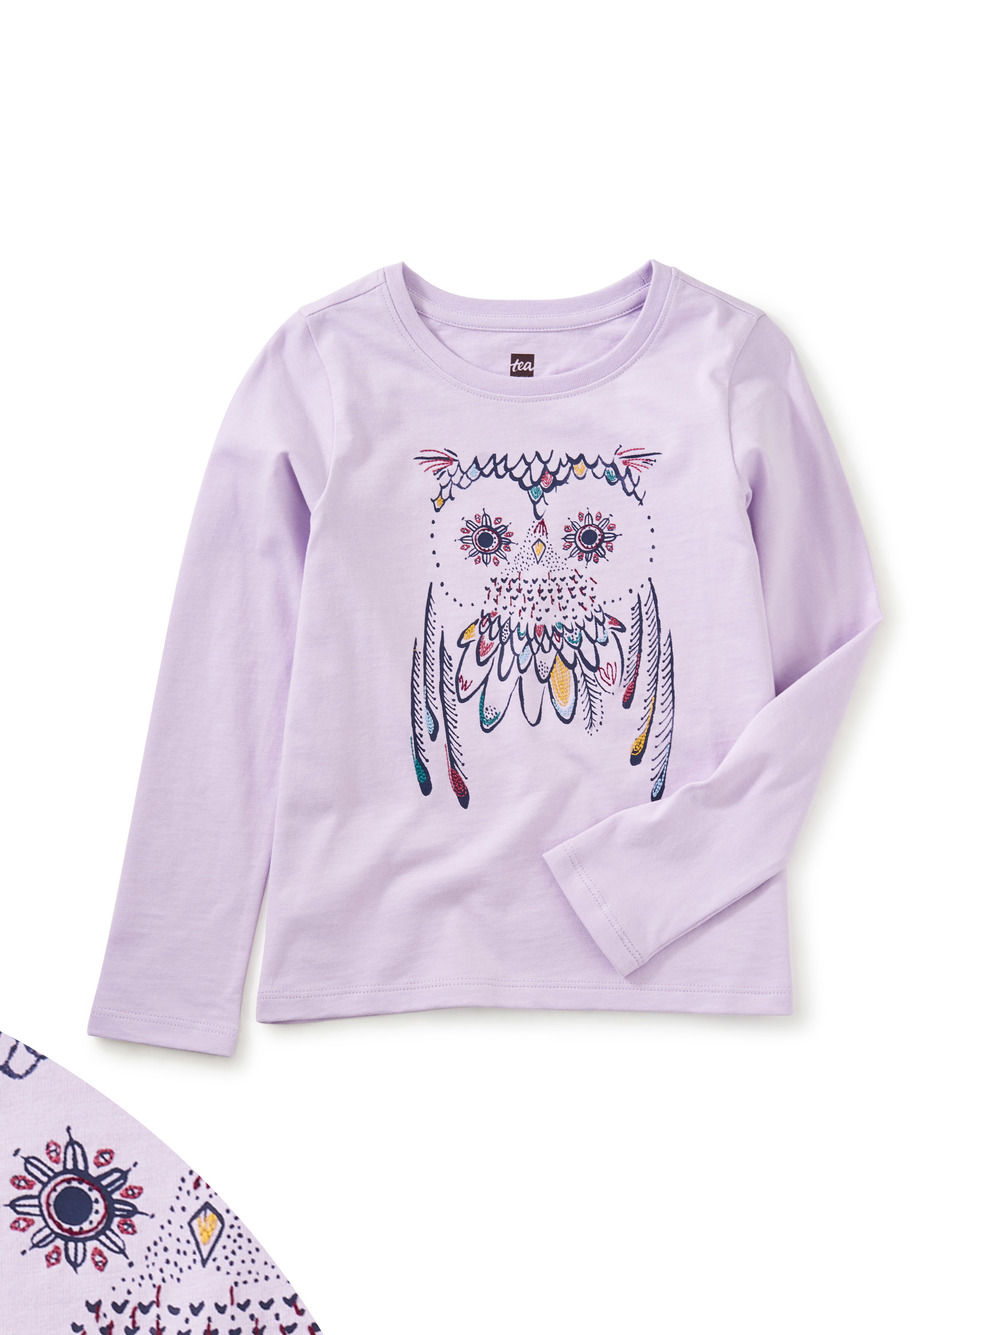 Embroidered Owl Graphic Tee